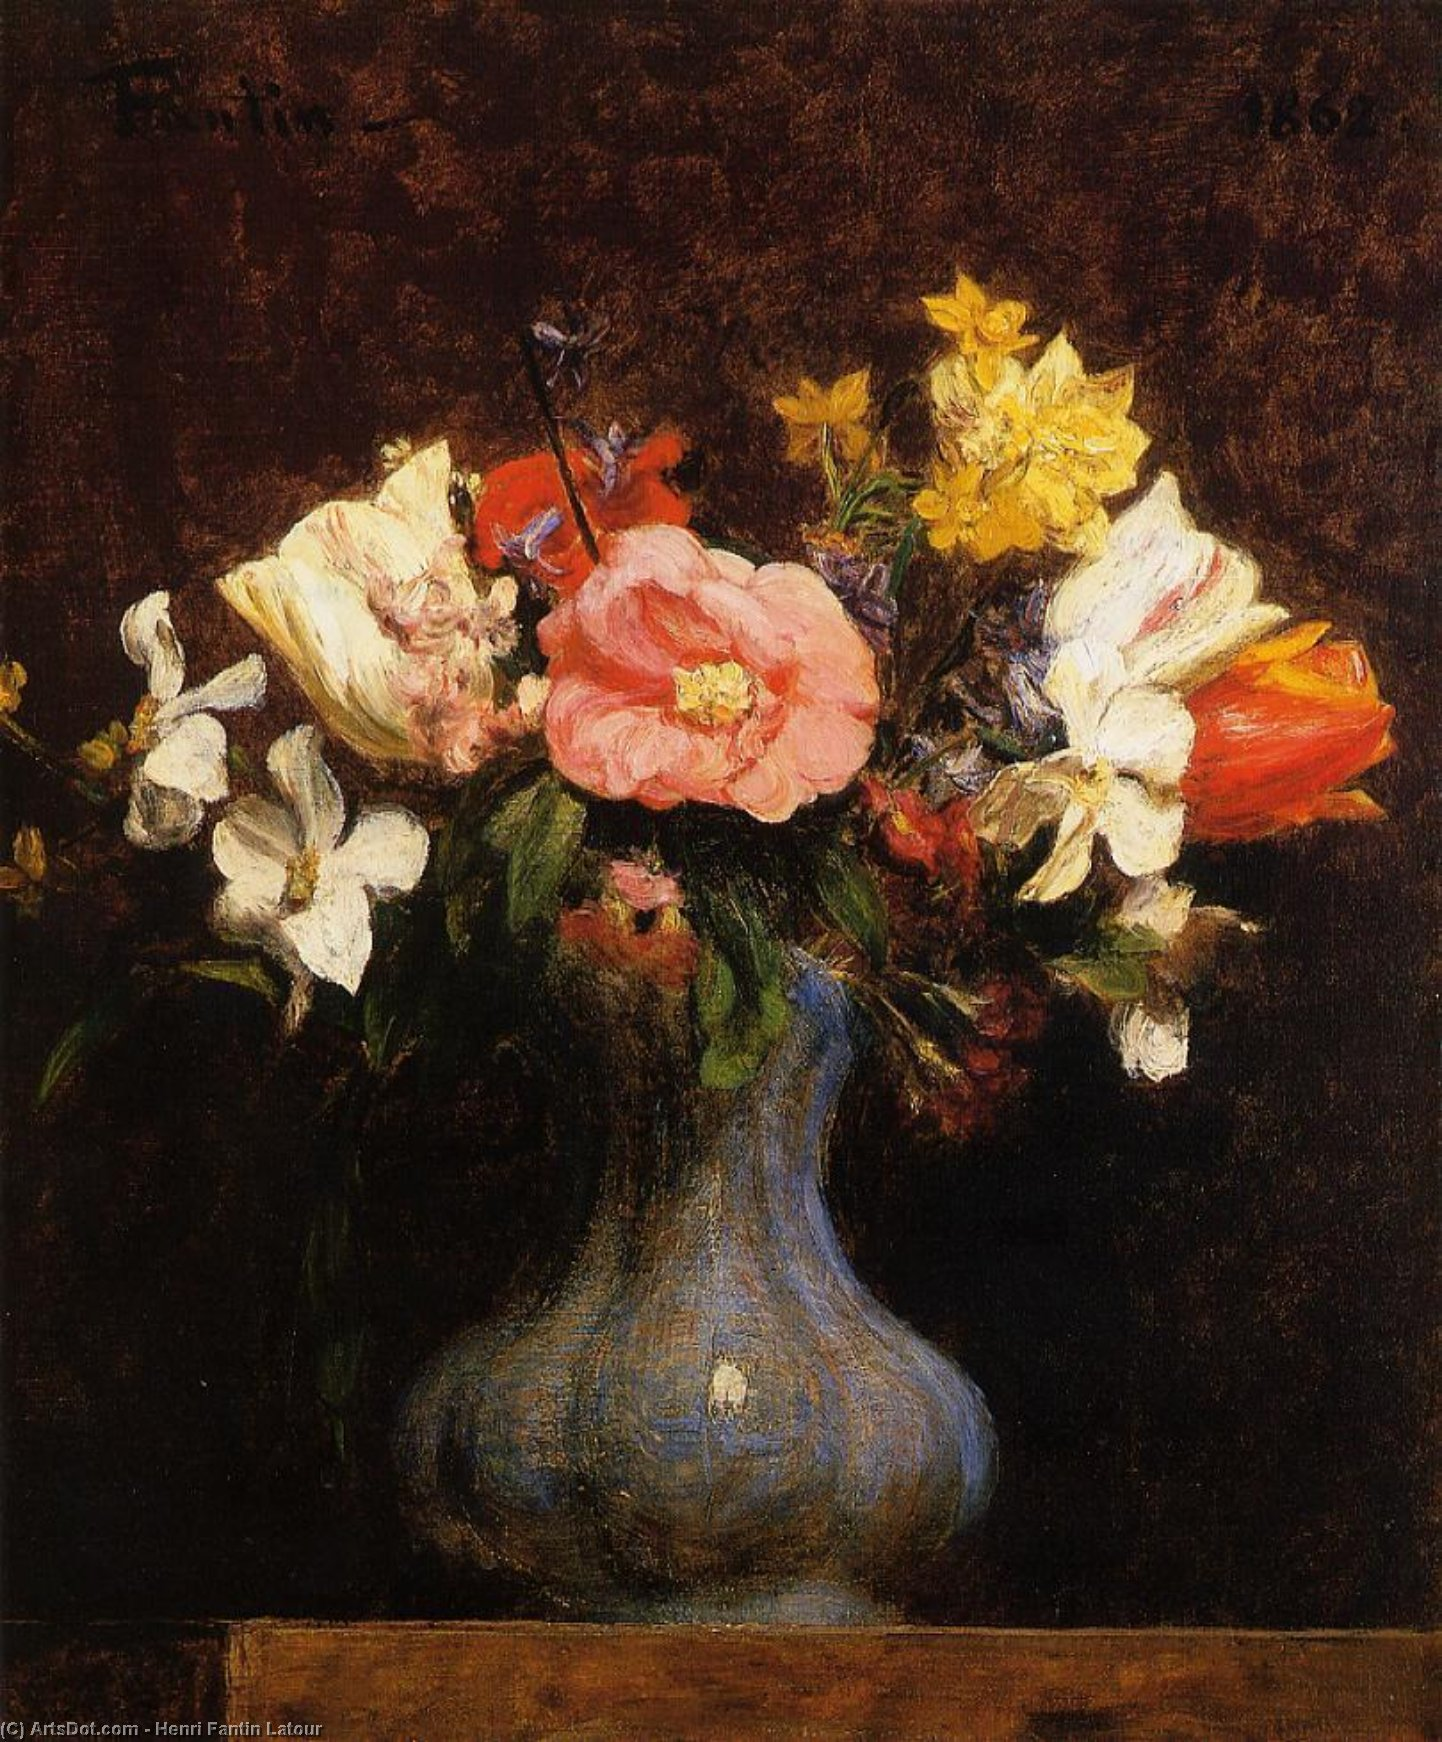 Flowers, Camelias and Tulips, Oil by Henri Fantin Latour (1836-1904, France)